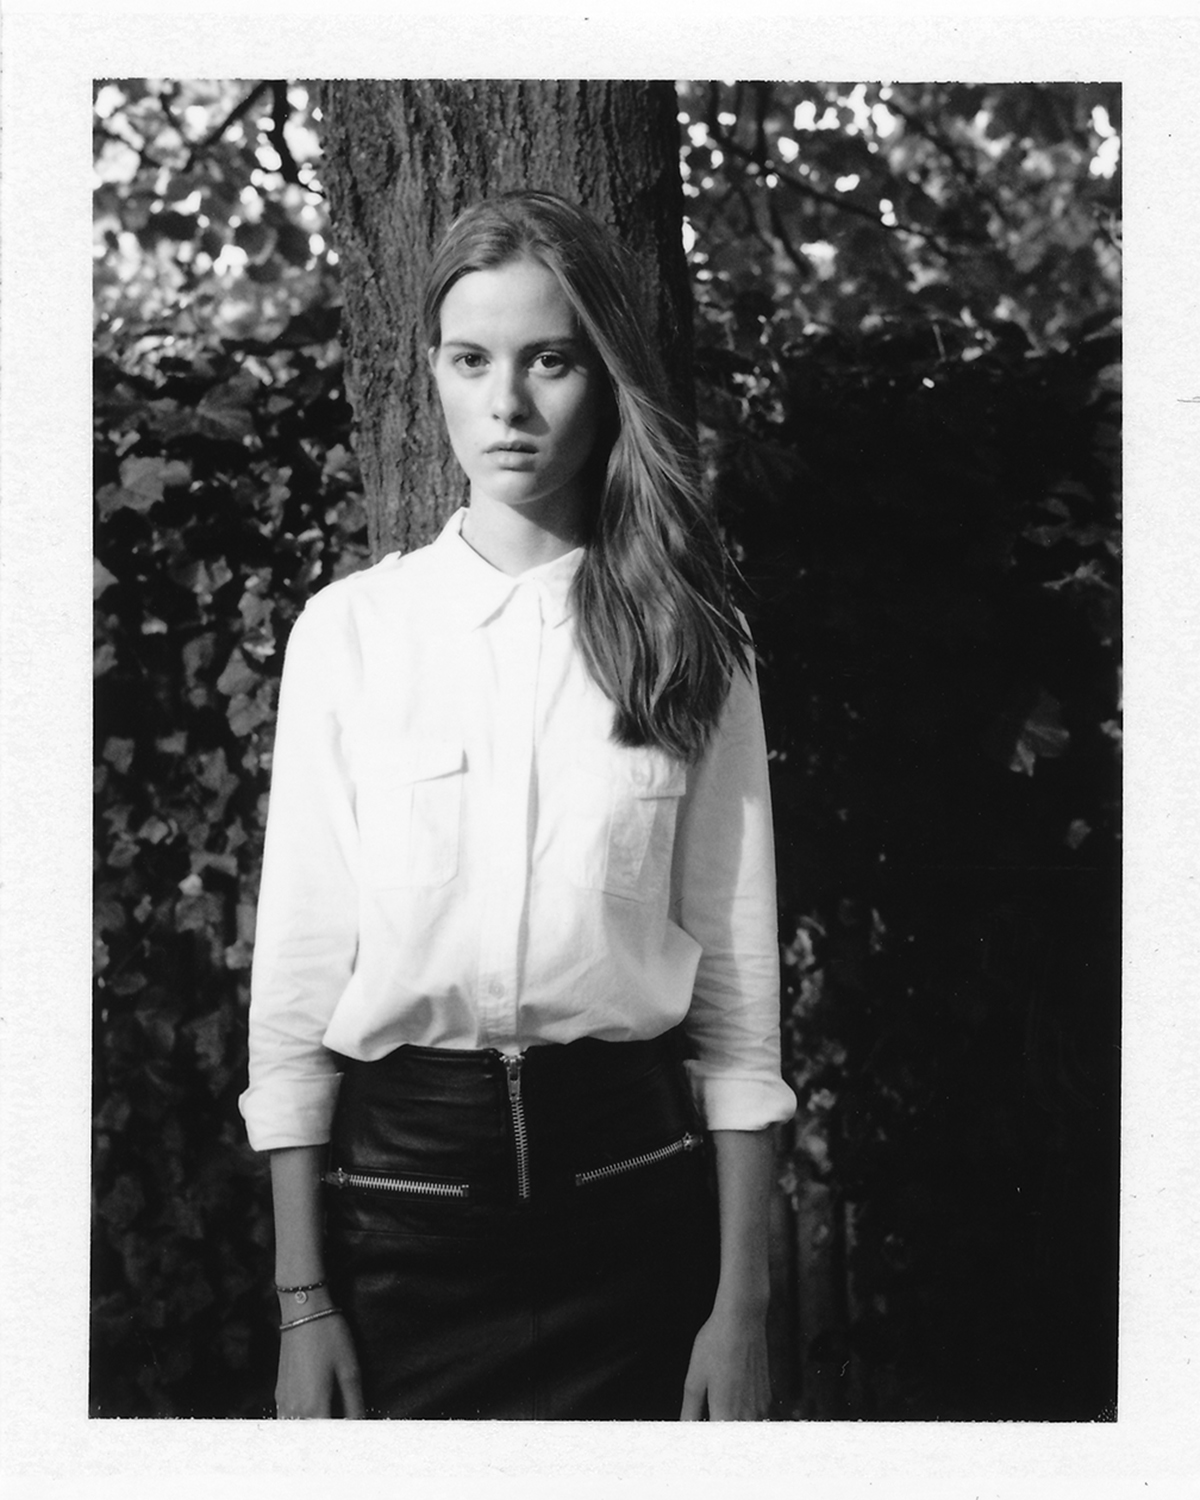 Kim modelling an upcycled leather skirt from  Pelechecoco  & a crisp white shirt from  Skall Studio , all from  My Fair Shop . Photographed by  Mikkel Vigholt  with equipment borrowed from  One of Many Cameras .